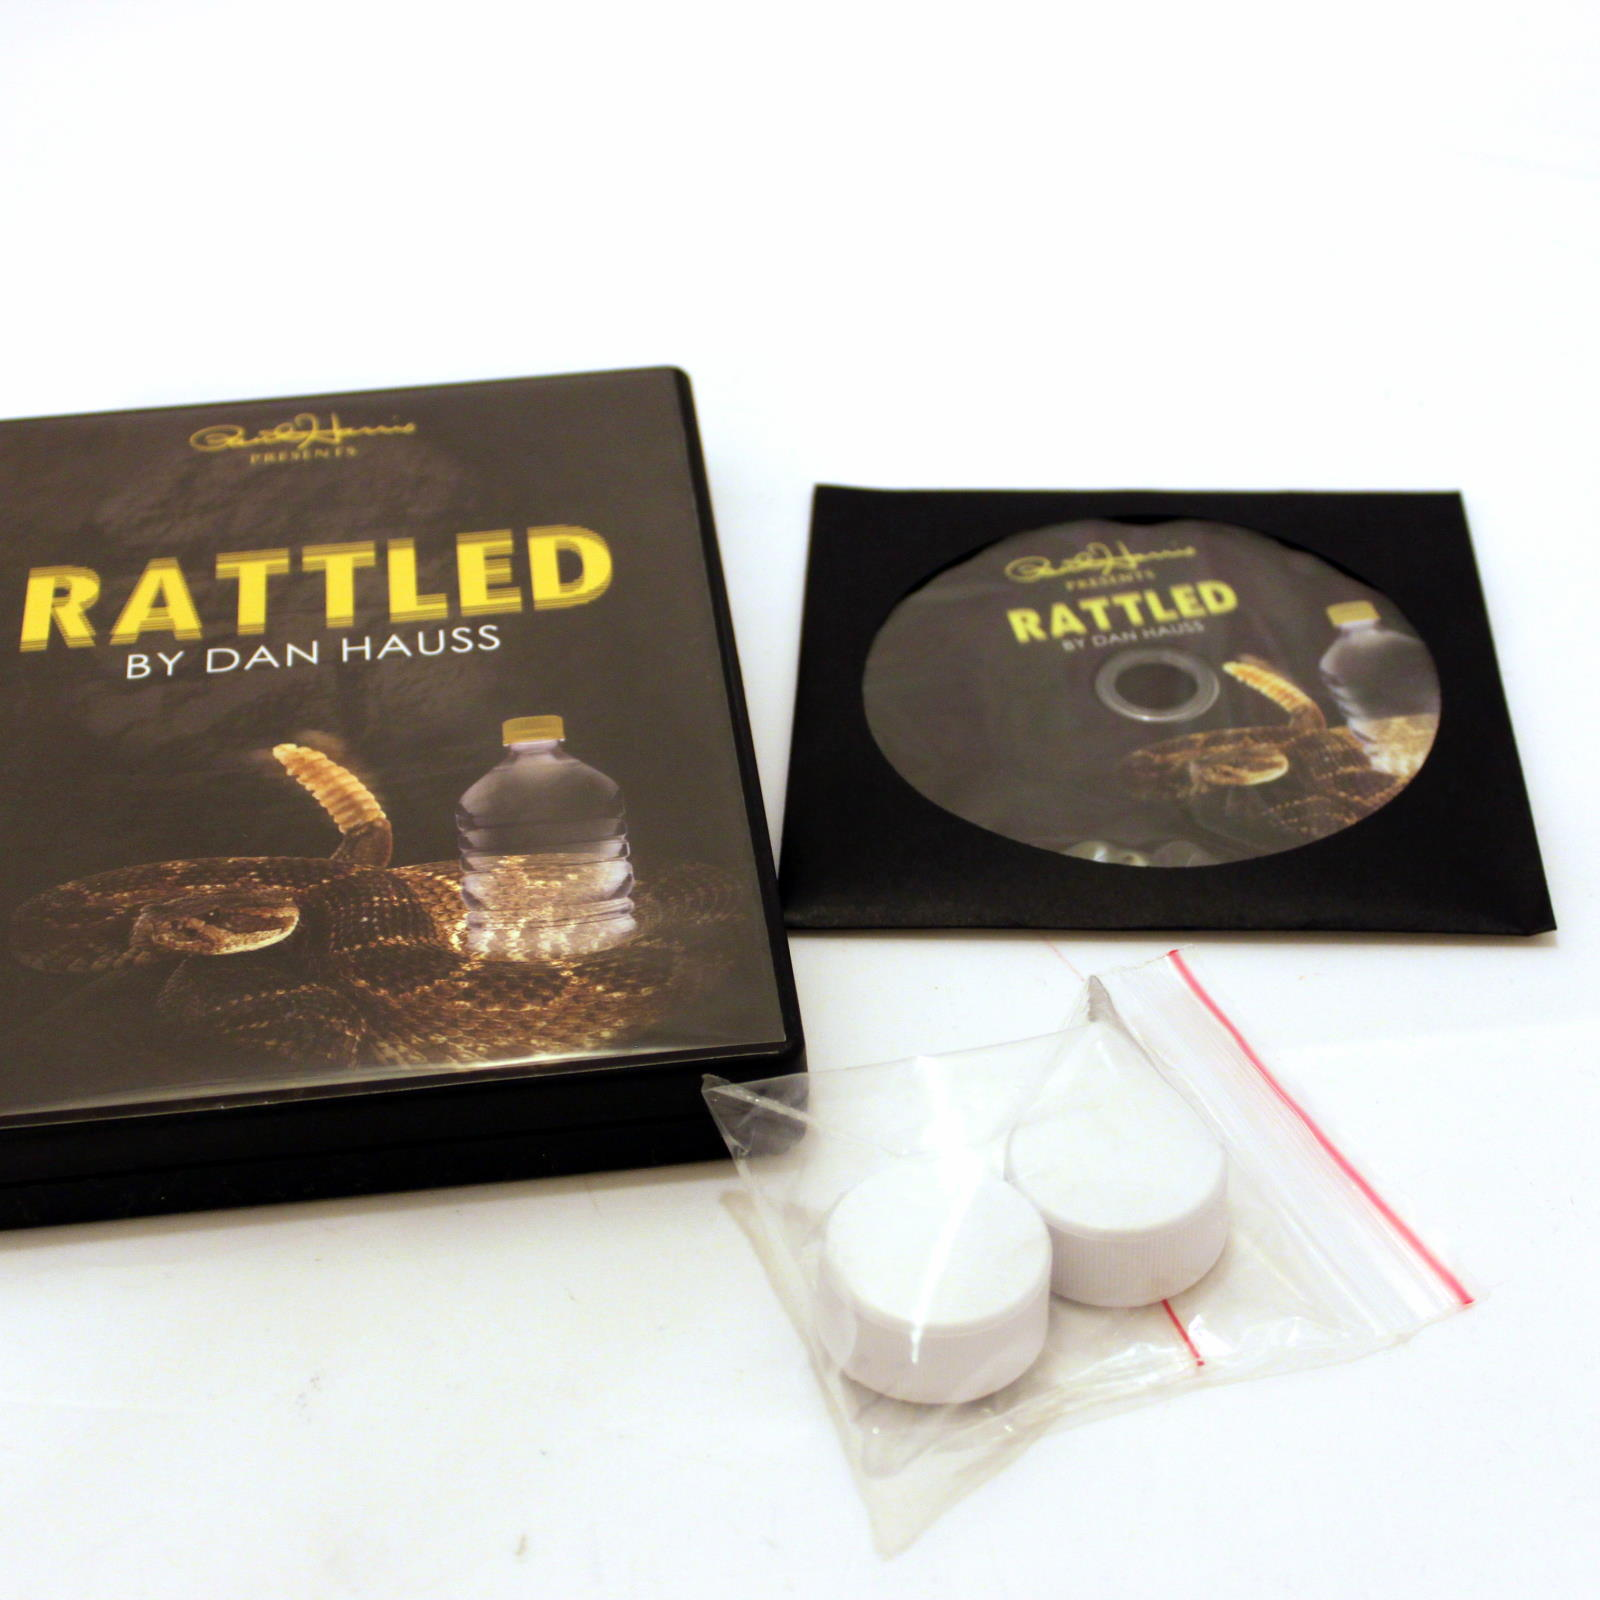 Rattled (DVD + Gimmick) by Dan Hauss